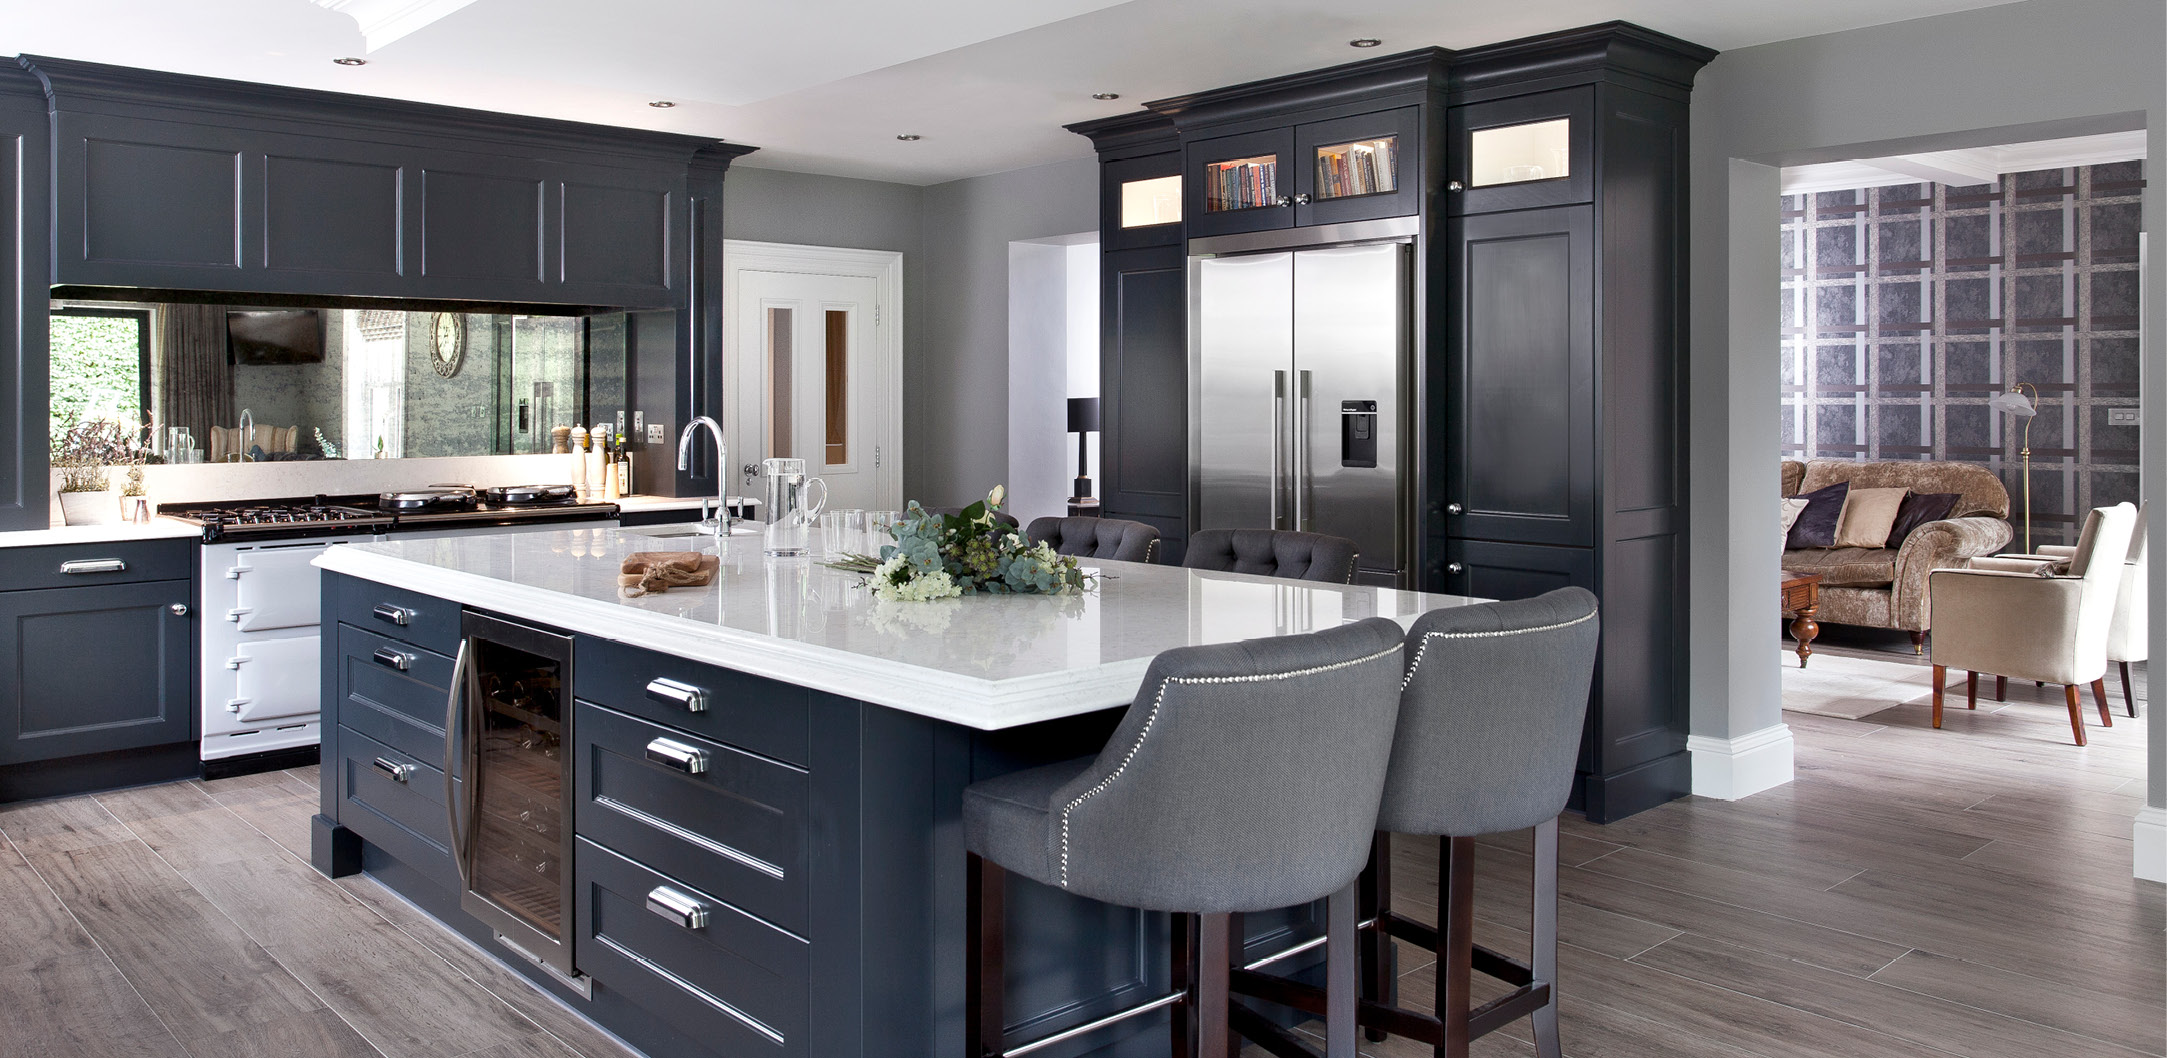 Painted kitchen cabinets modern for Contemporary kitchen style